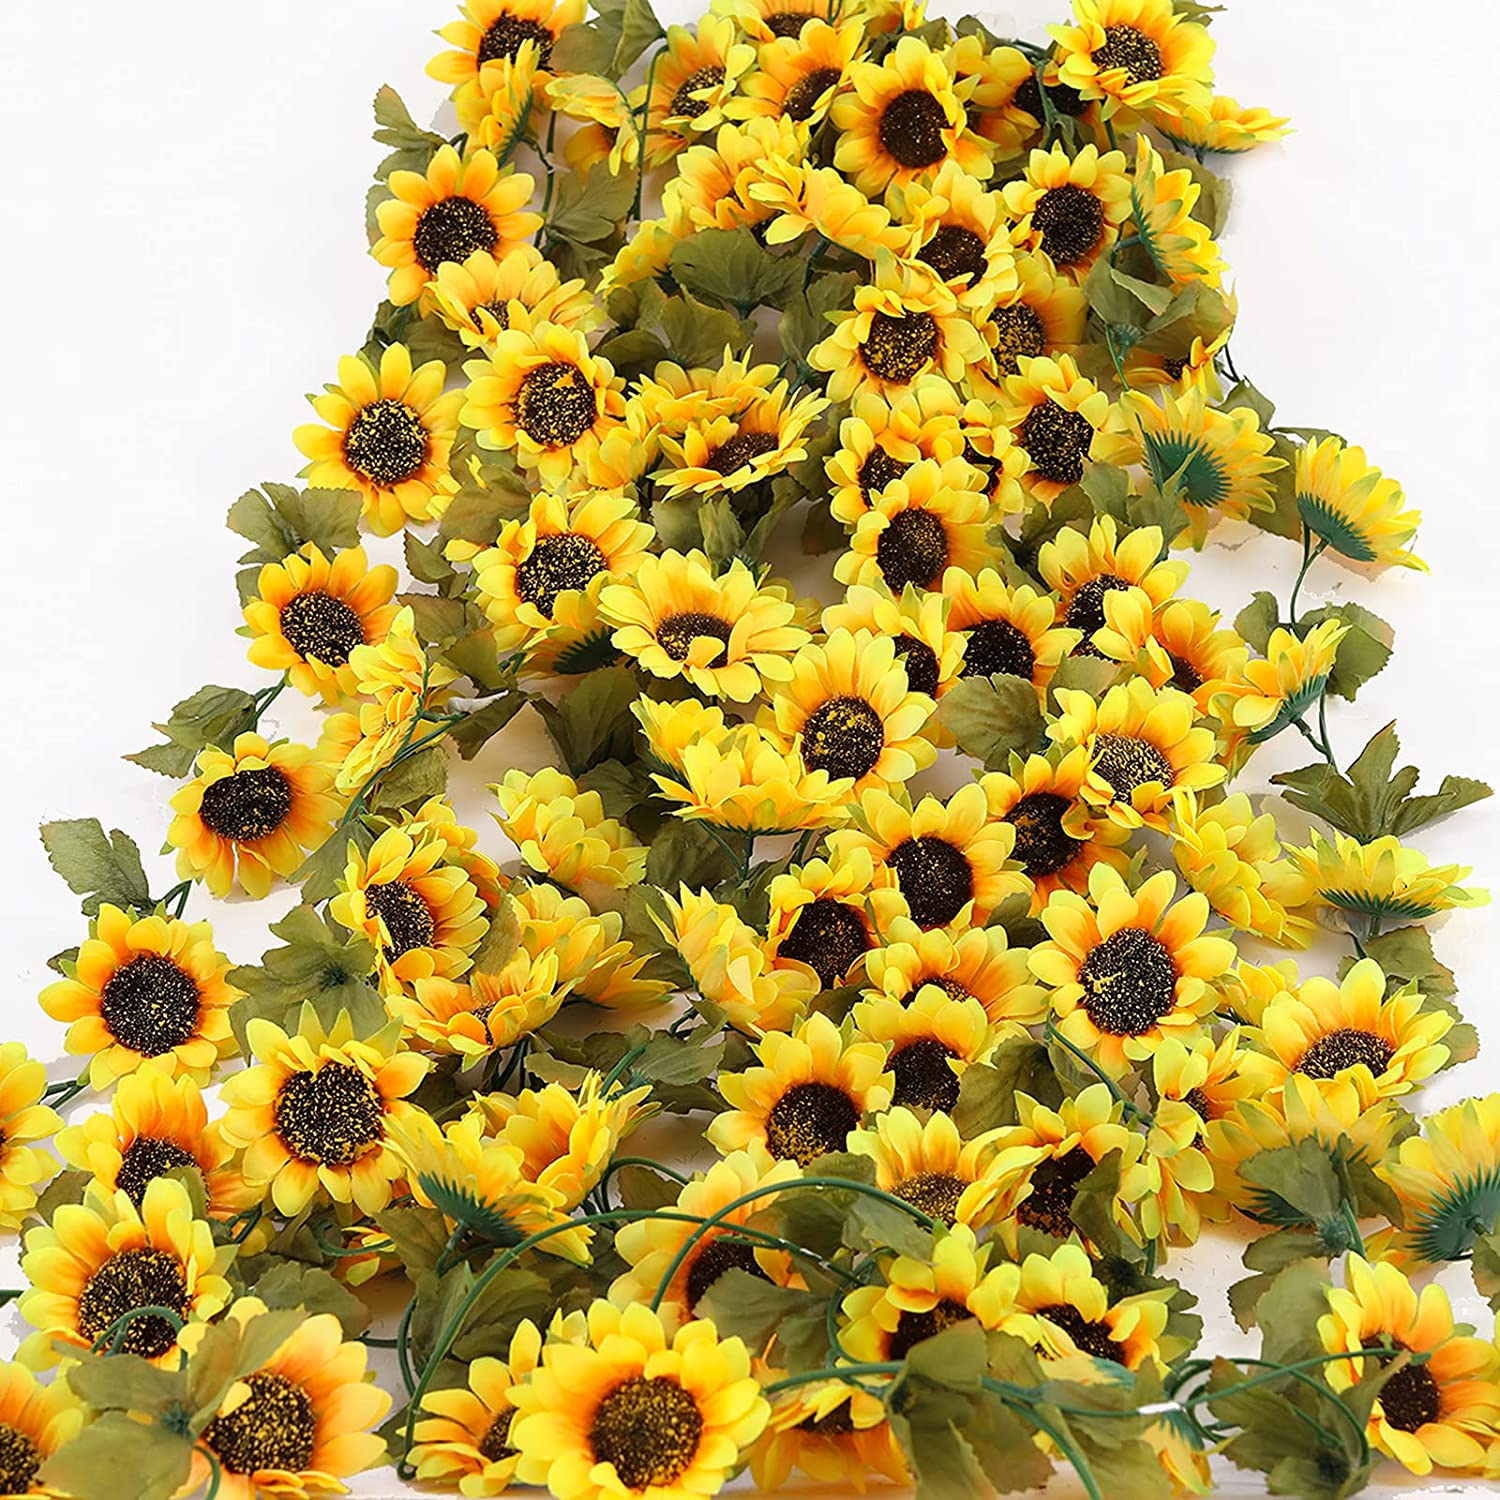 PARTY JOY 3Pack Artificial Sunflower Garland Silk Sunflower Vine Artificial Flowers Garland with Green Leaves for Wedding Party Table Decoration (Yellow, 3)